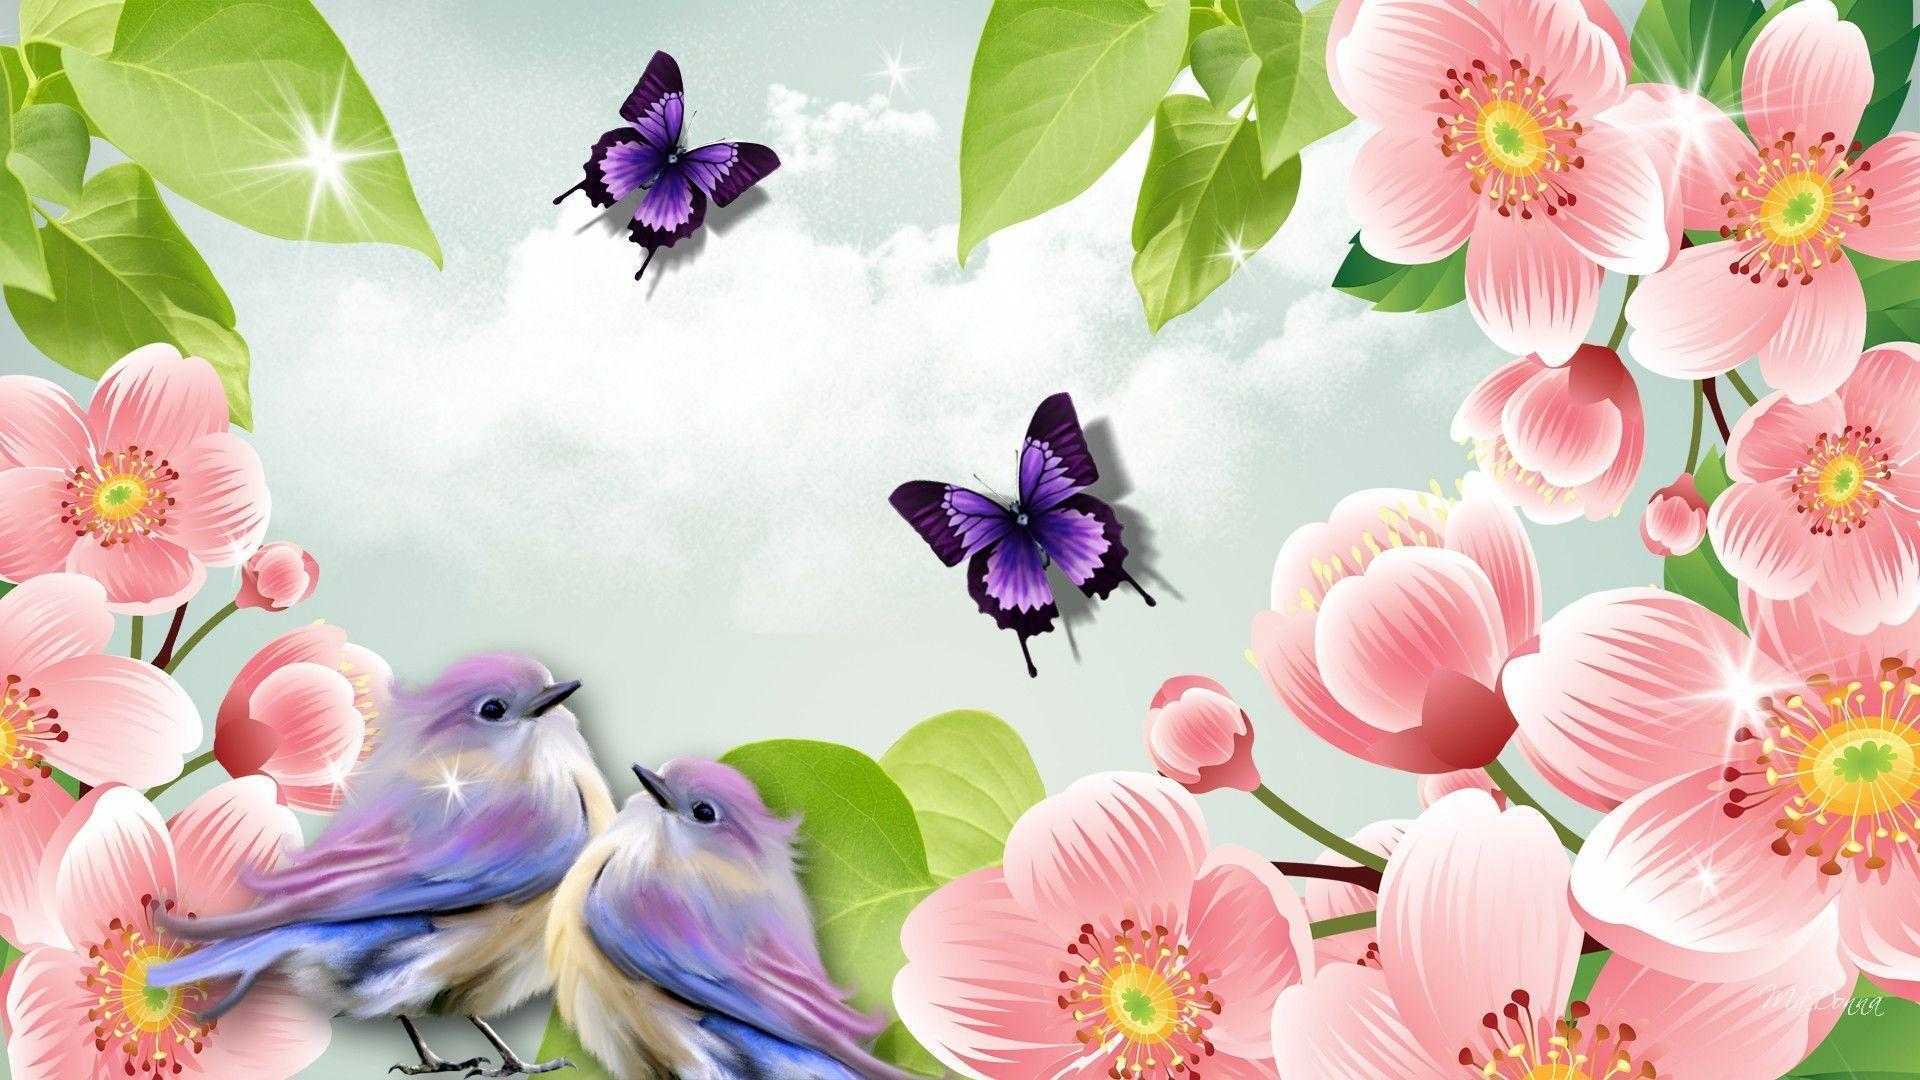 spring nature wallpaper - photo #42